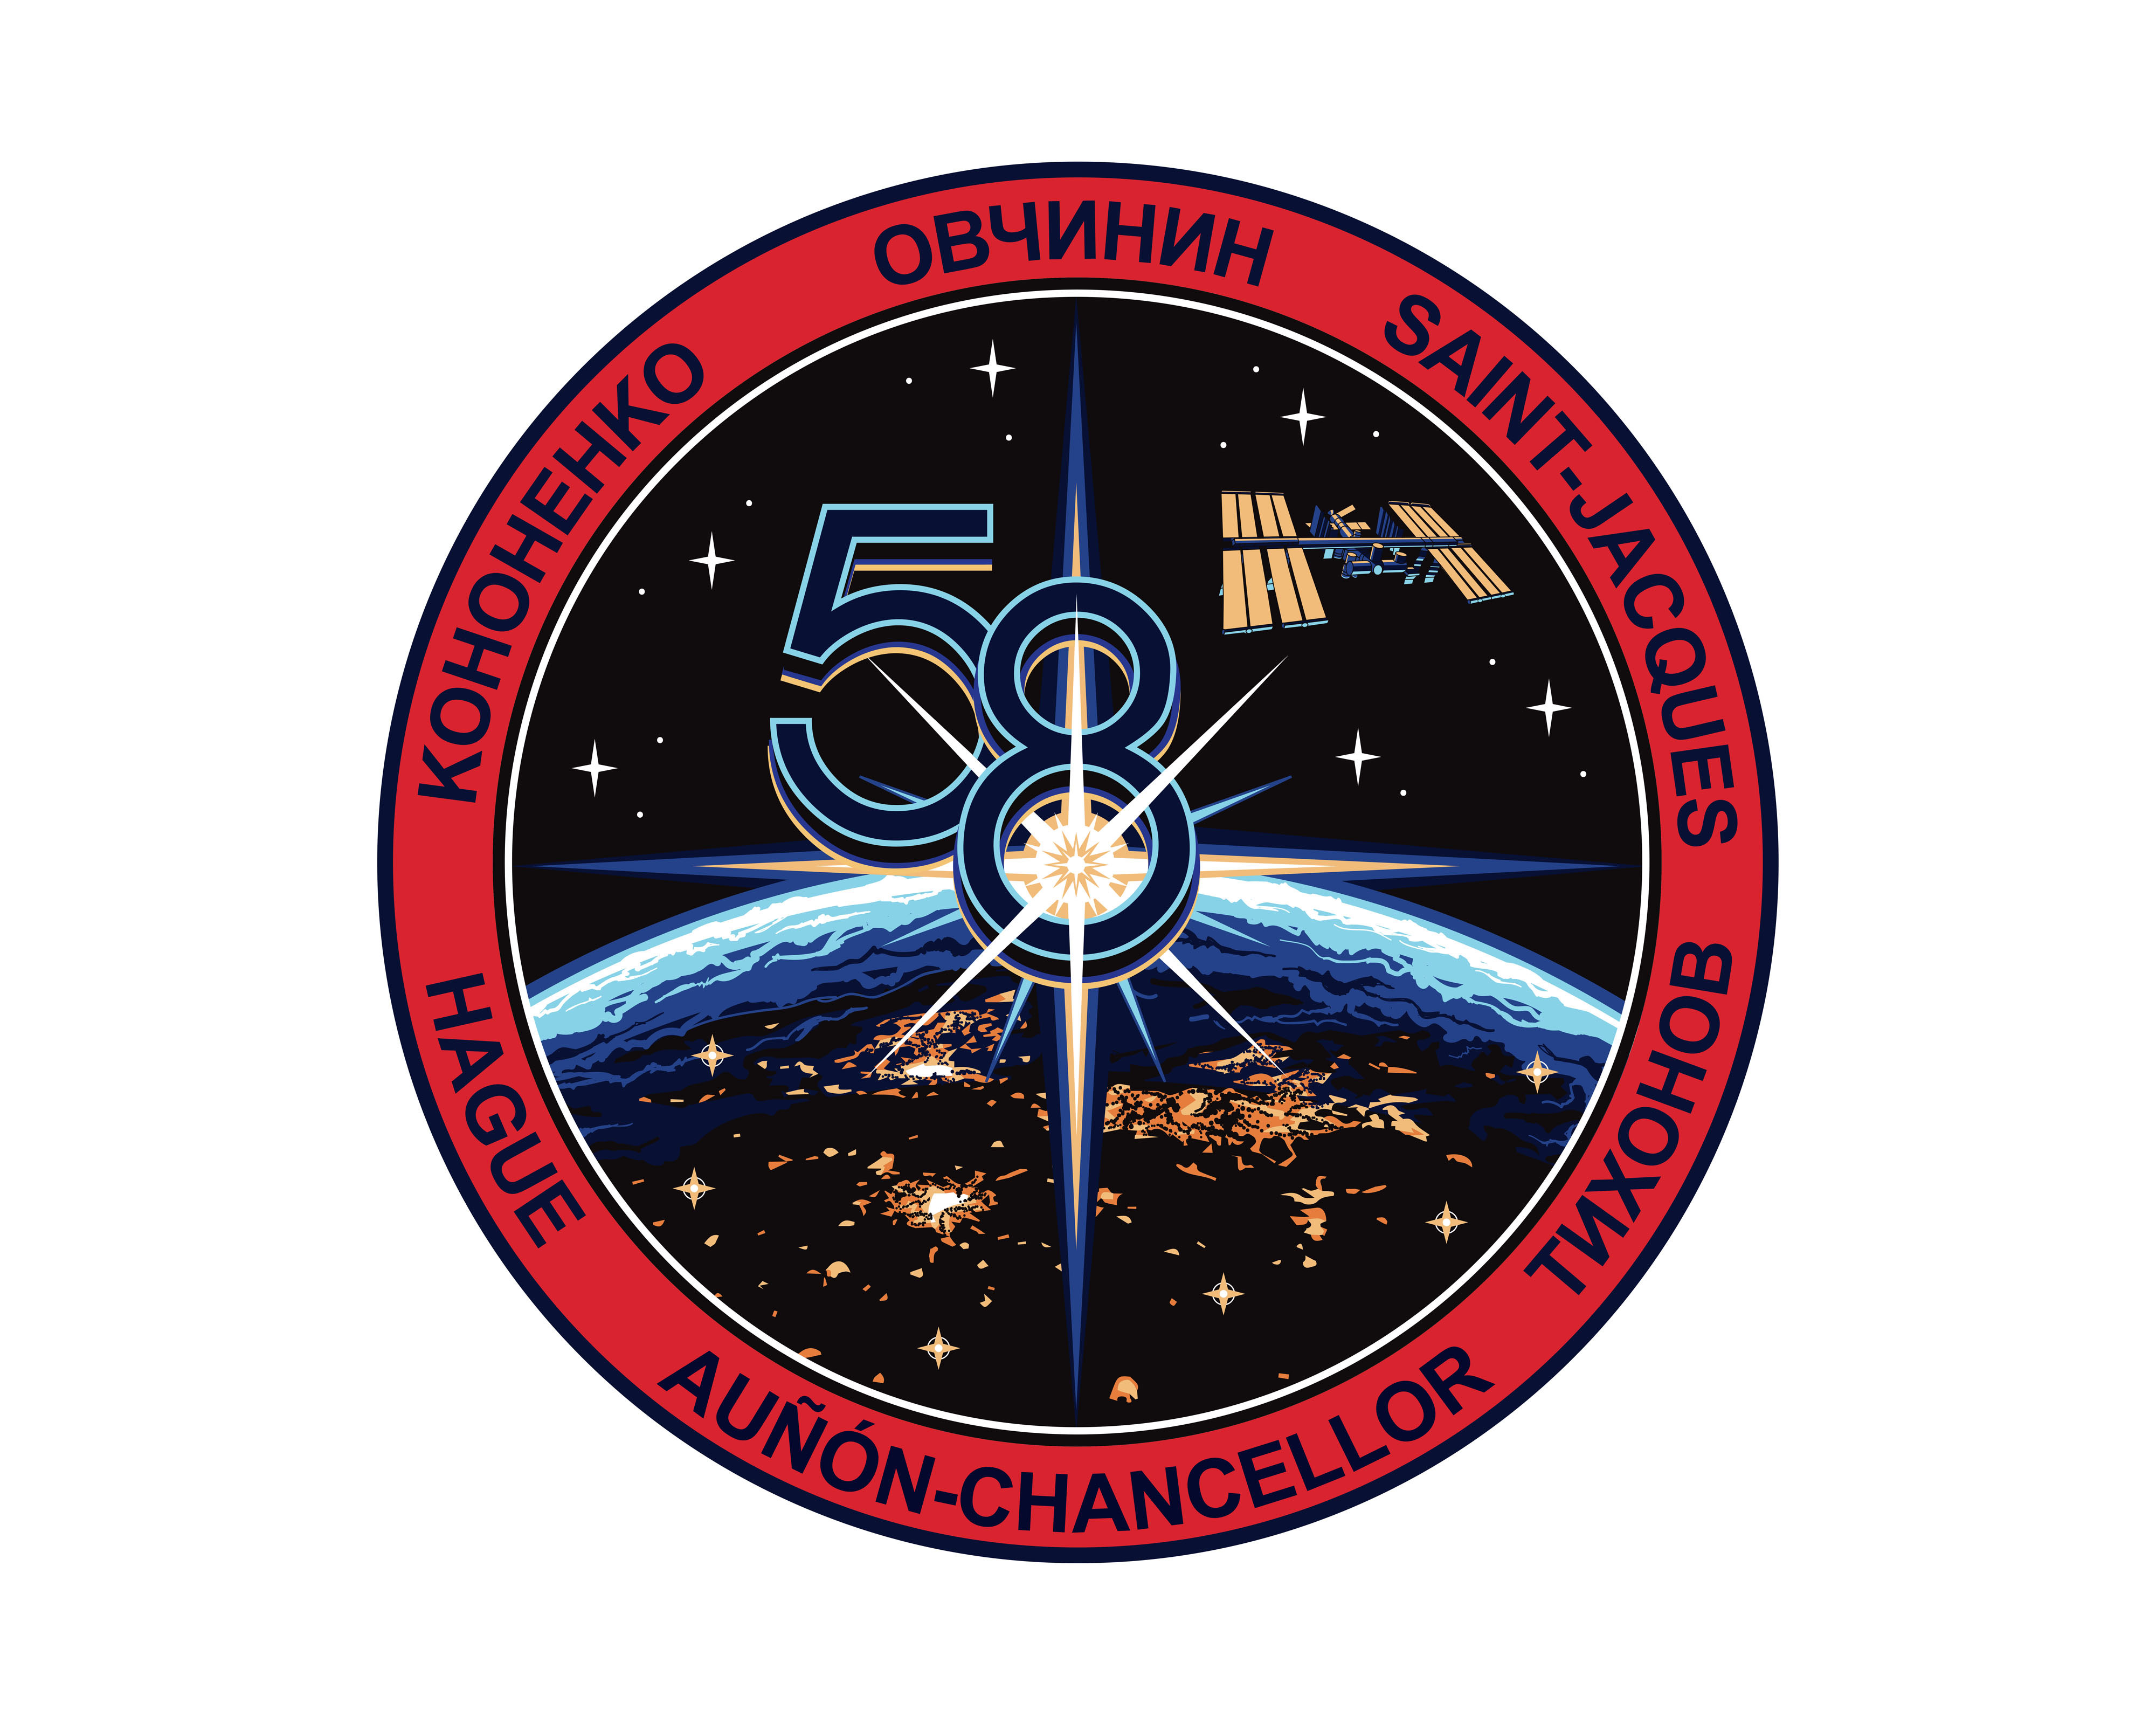 Space 1999 patches.